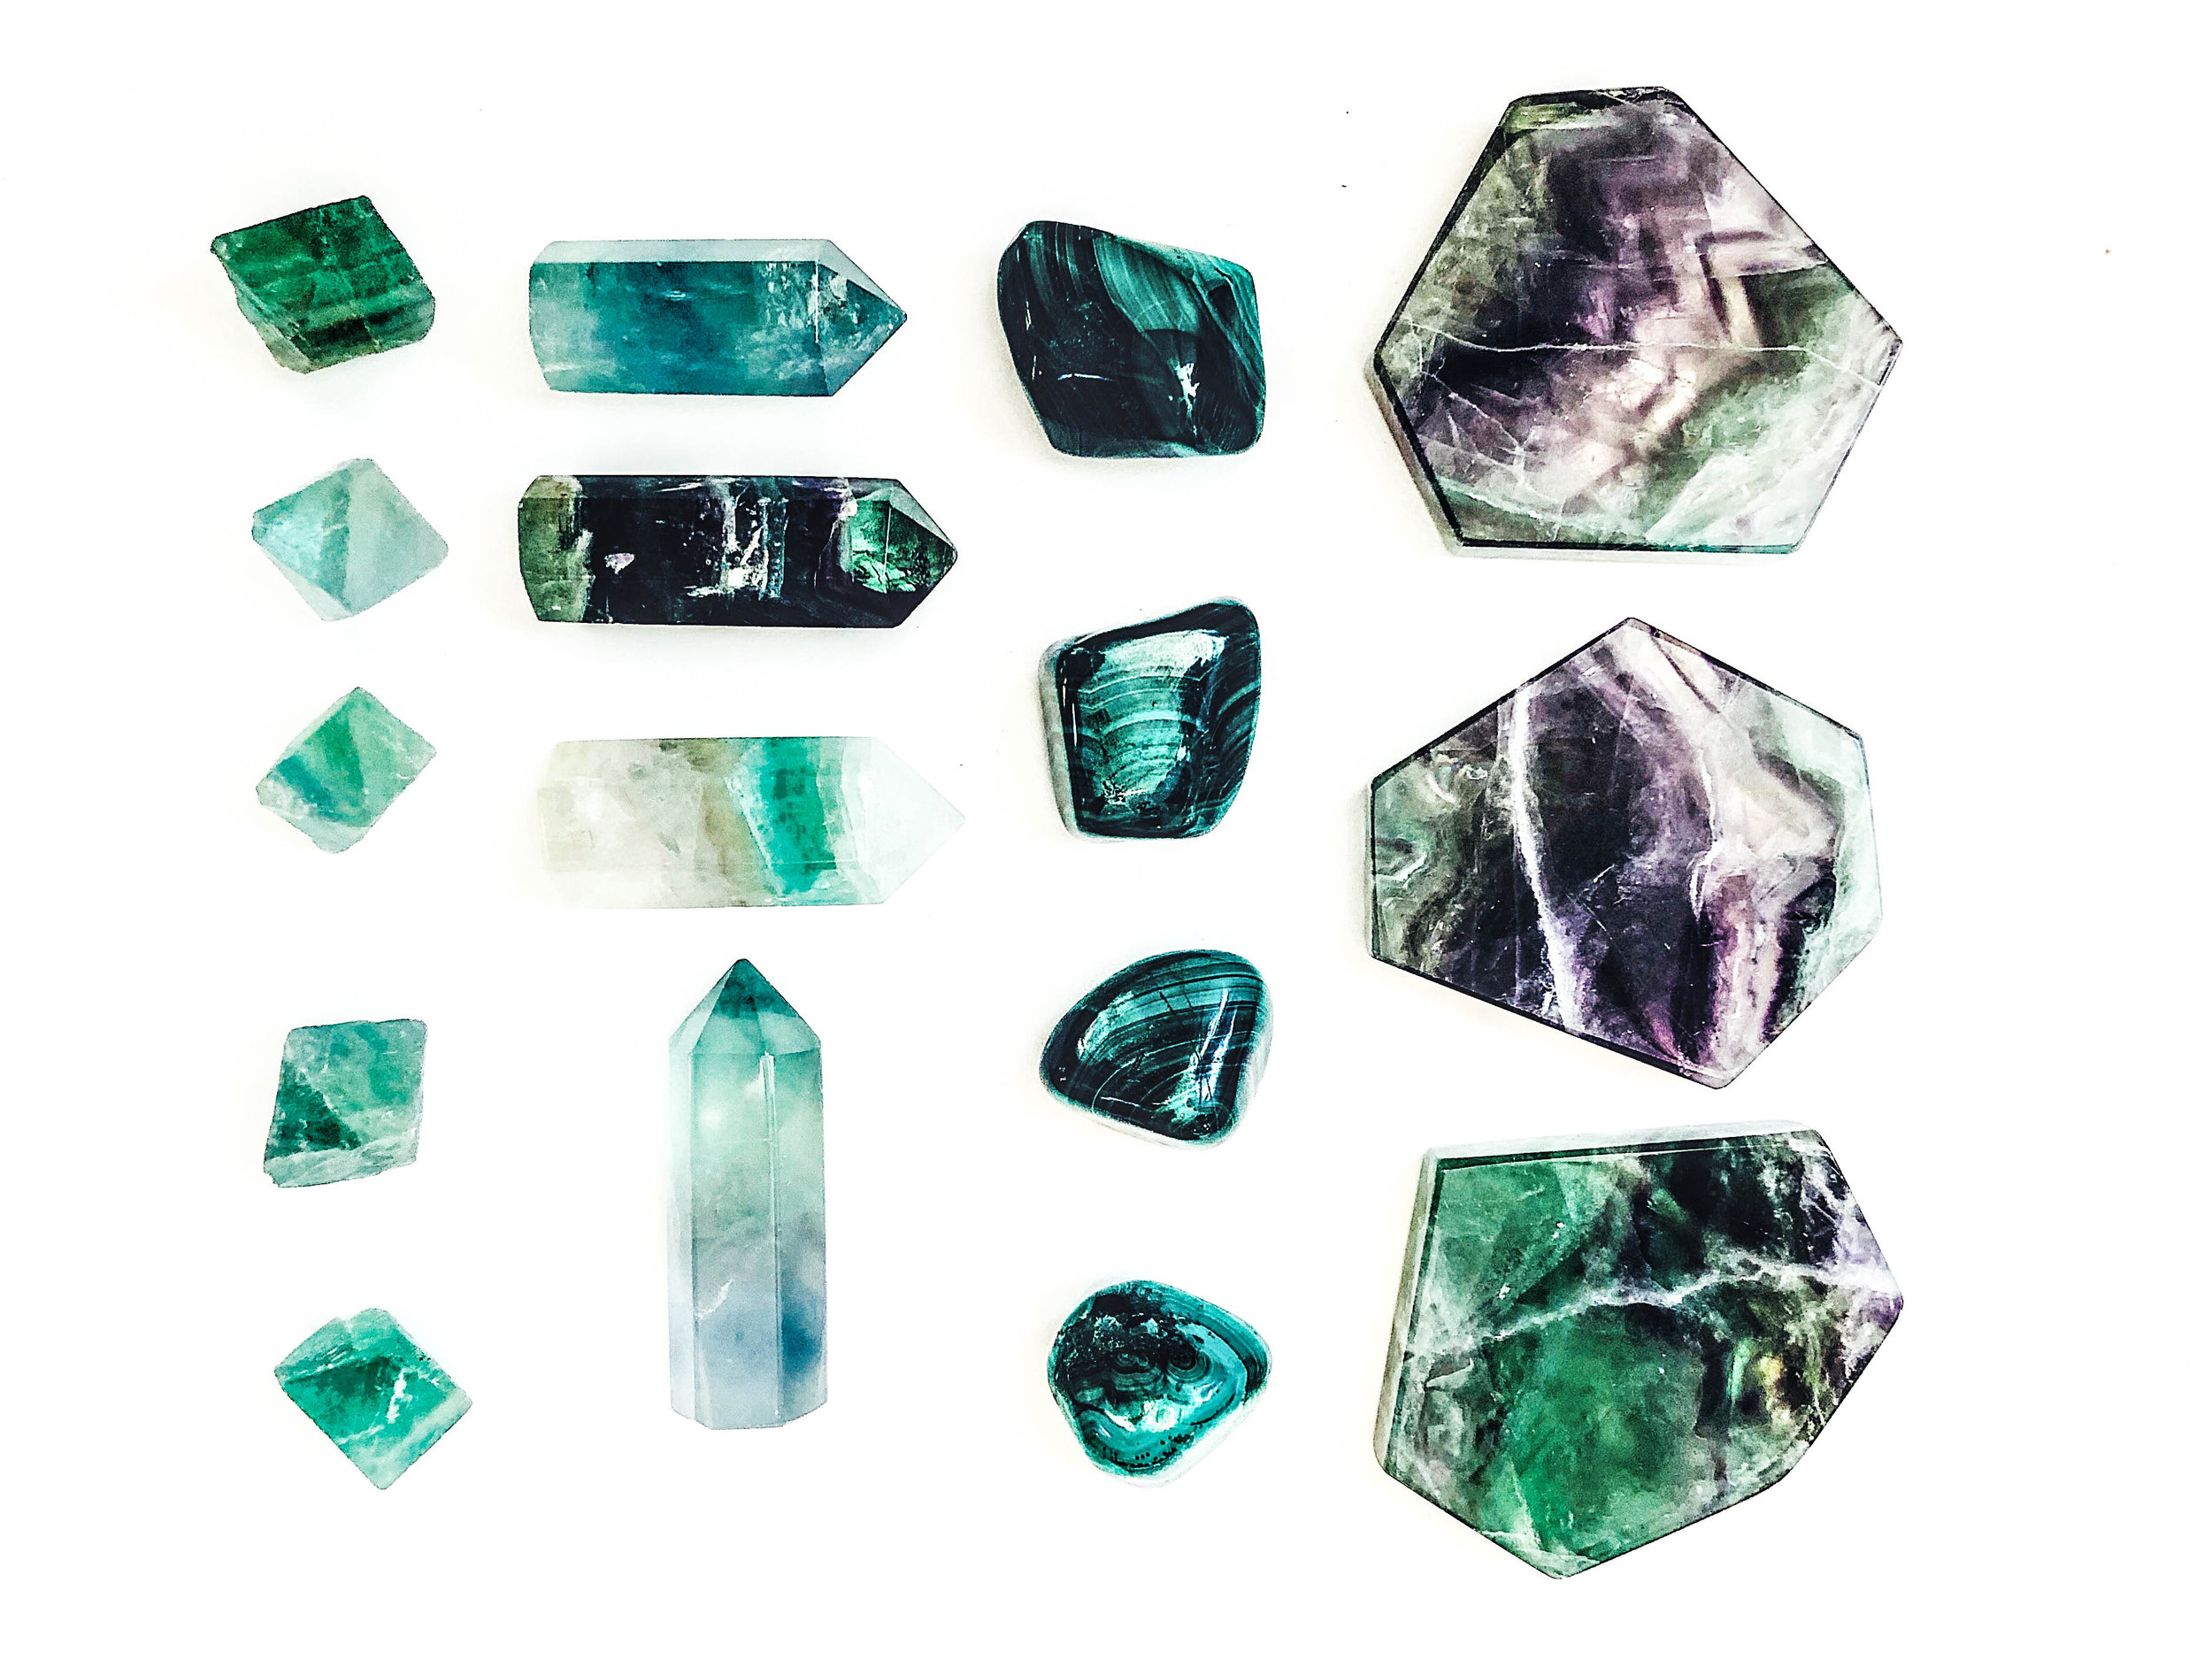 Left to right: Raw Fluorite Octahedron, Fluorite Points, Malachite, Fluorite Slabs.  These are great for mental clarity. Malachite is the great stone of transformation and wonderful for traveling.